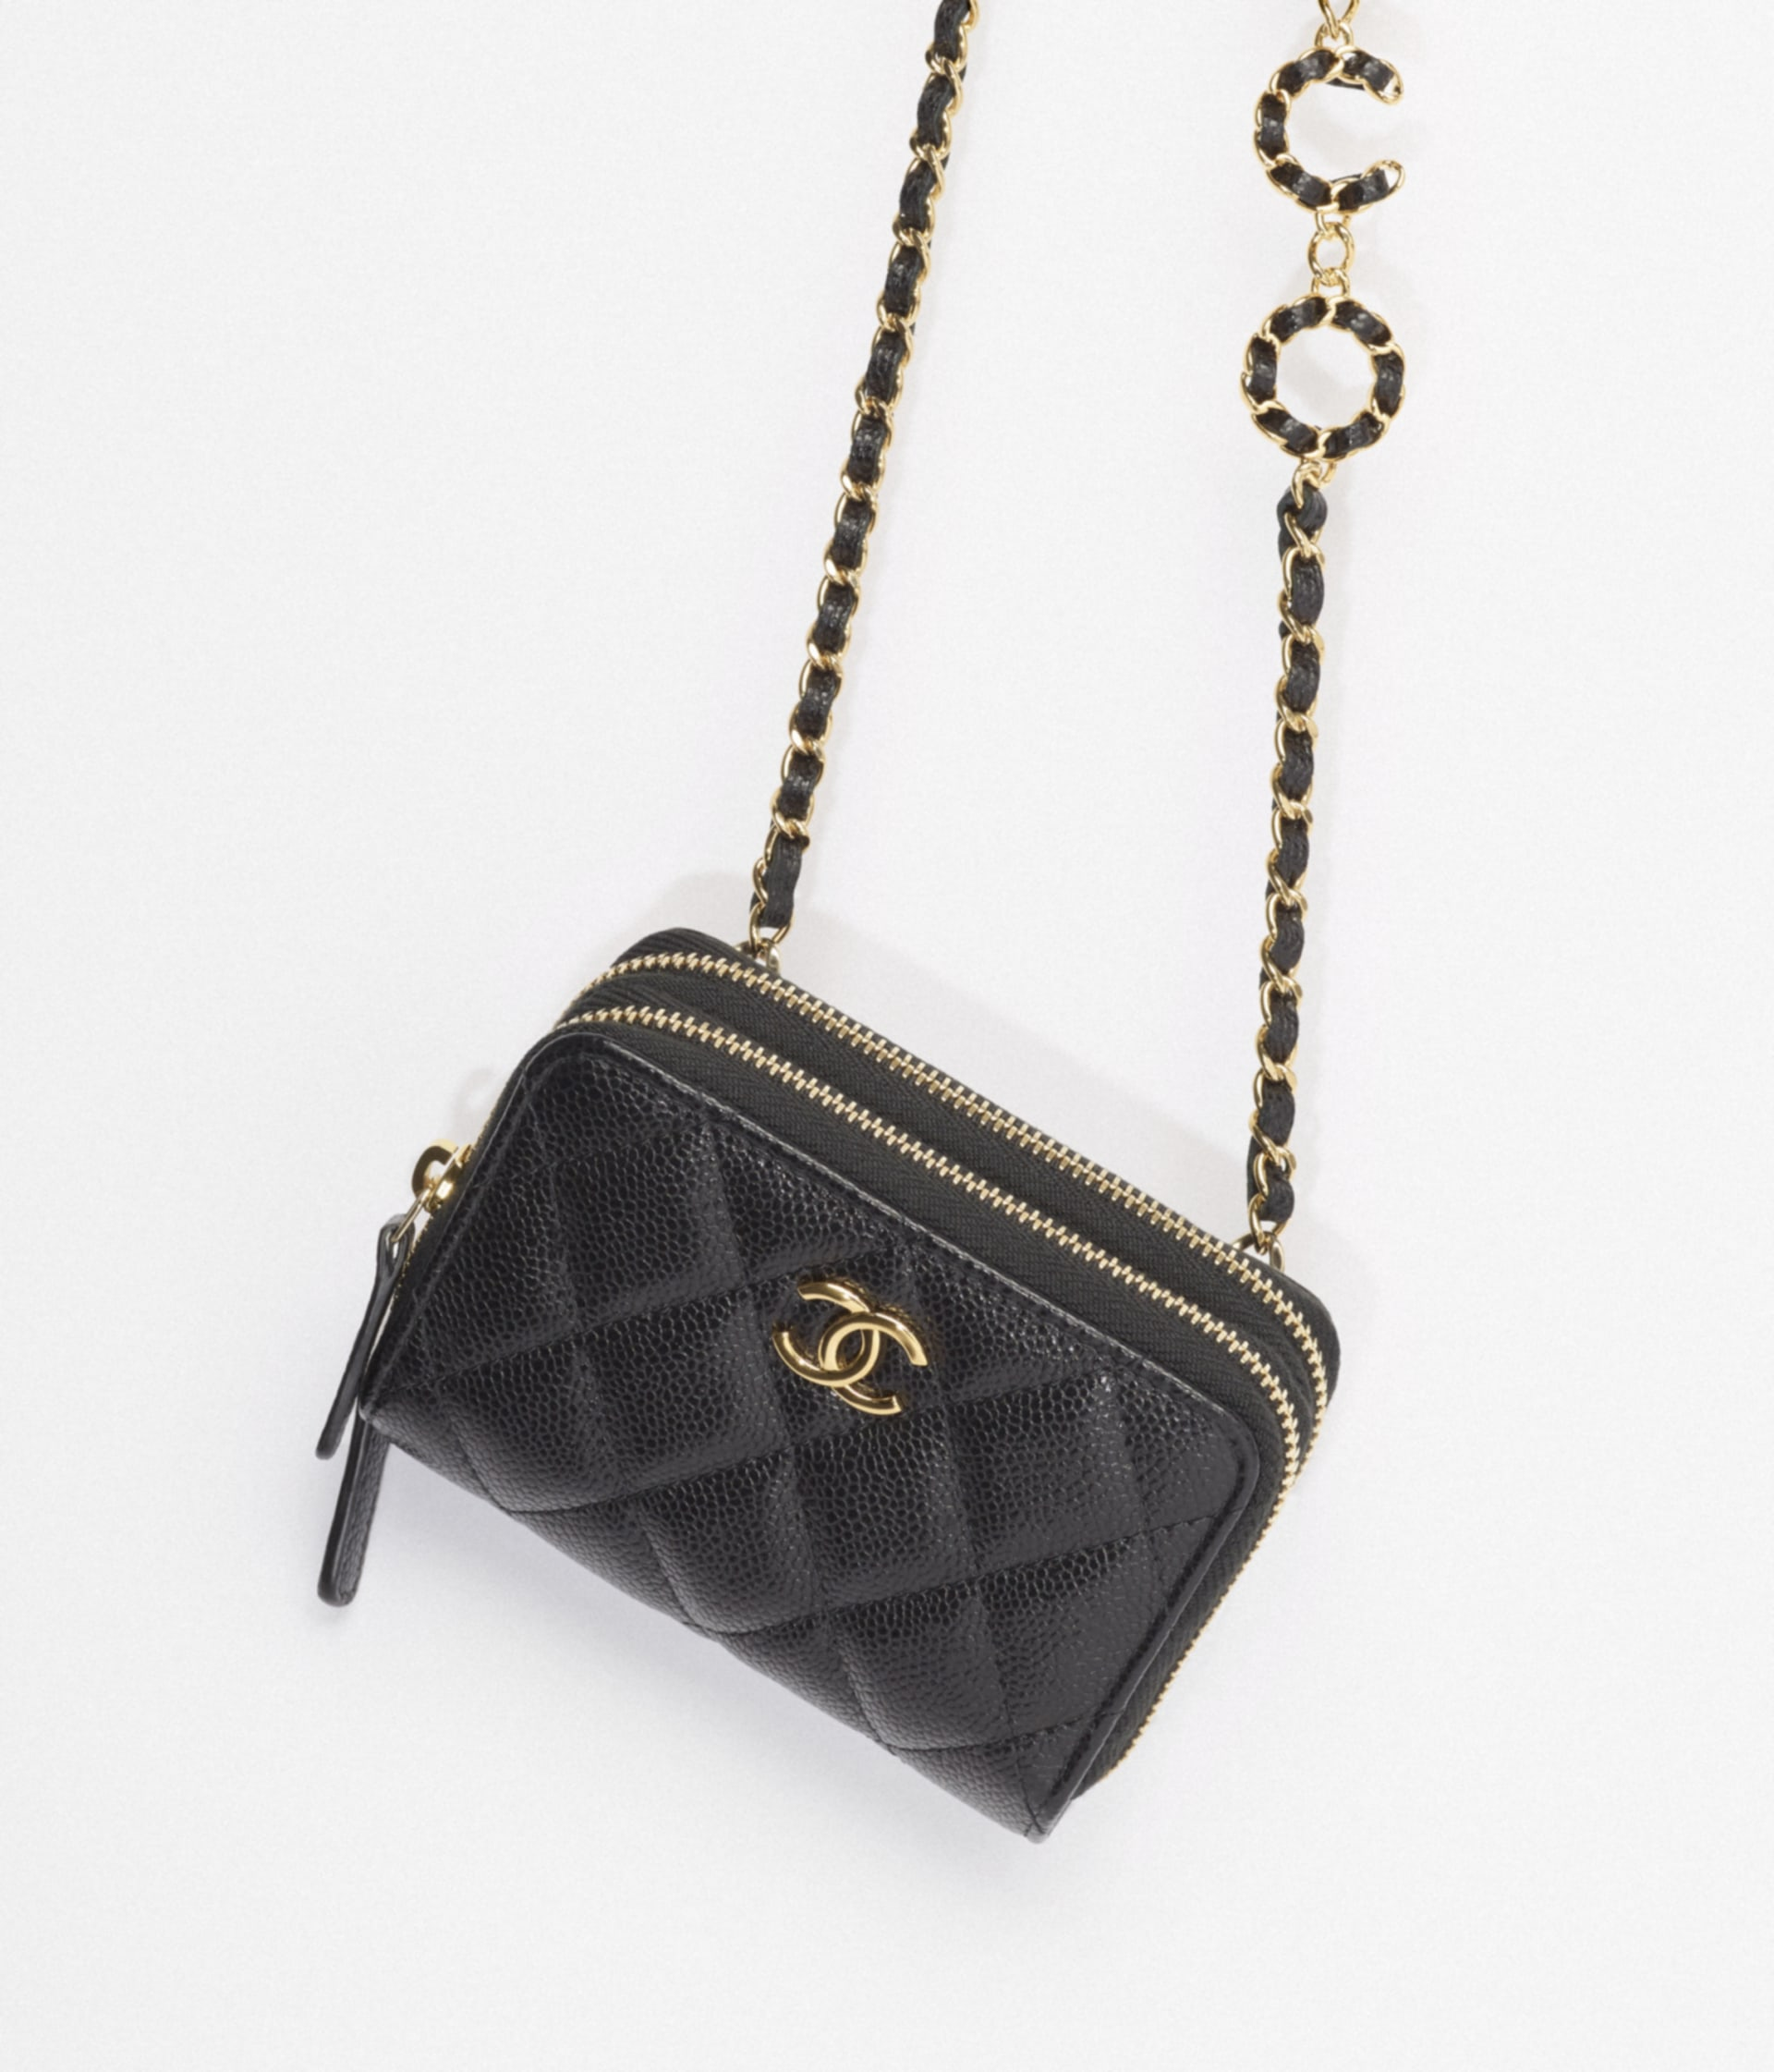 image 3 - Clutch with Chain - Grained Calfskin & Gold-Tone Metal - Black